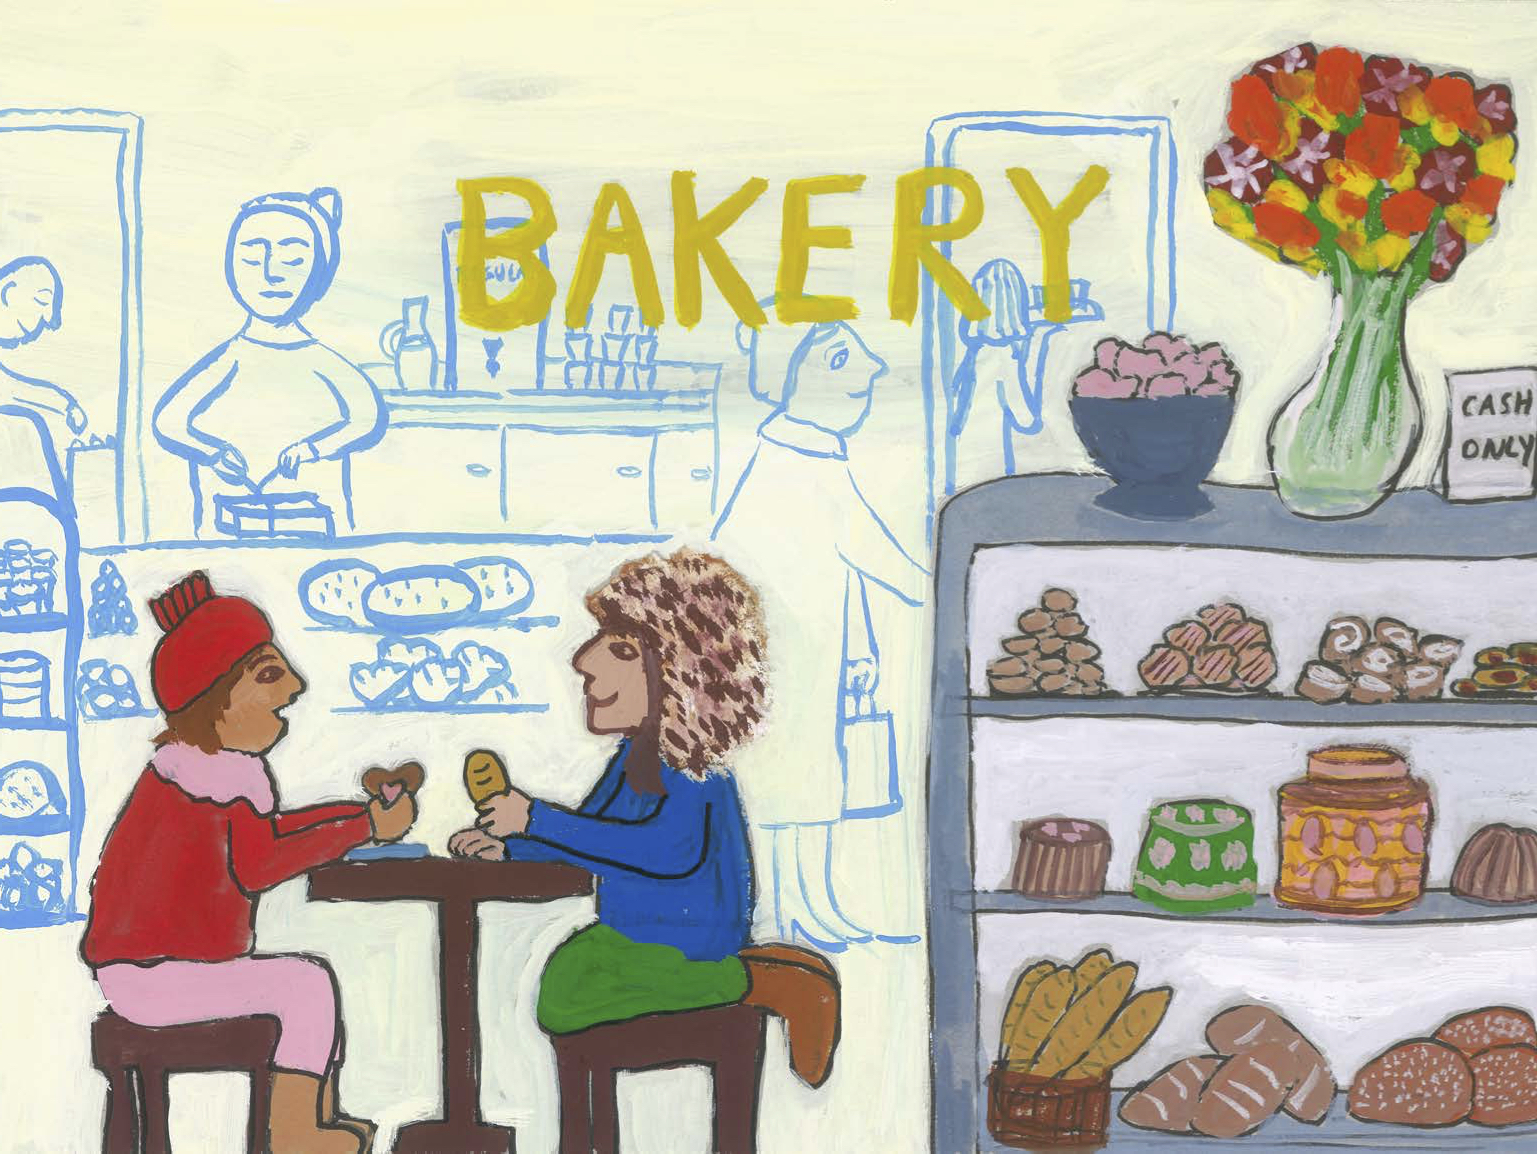 Bakery Conversation